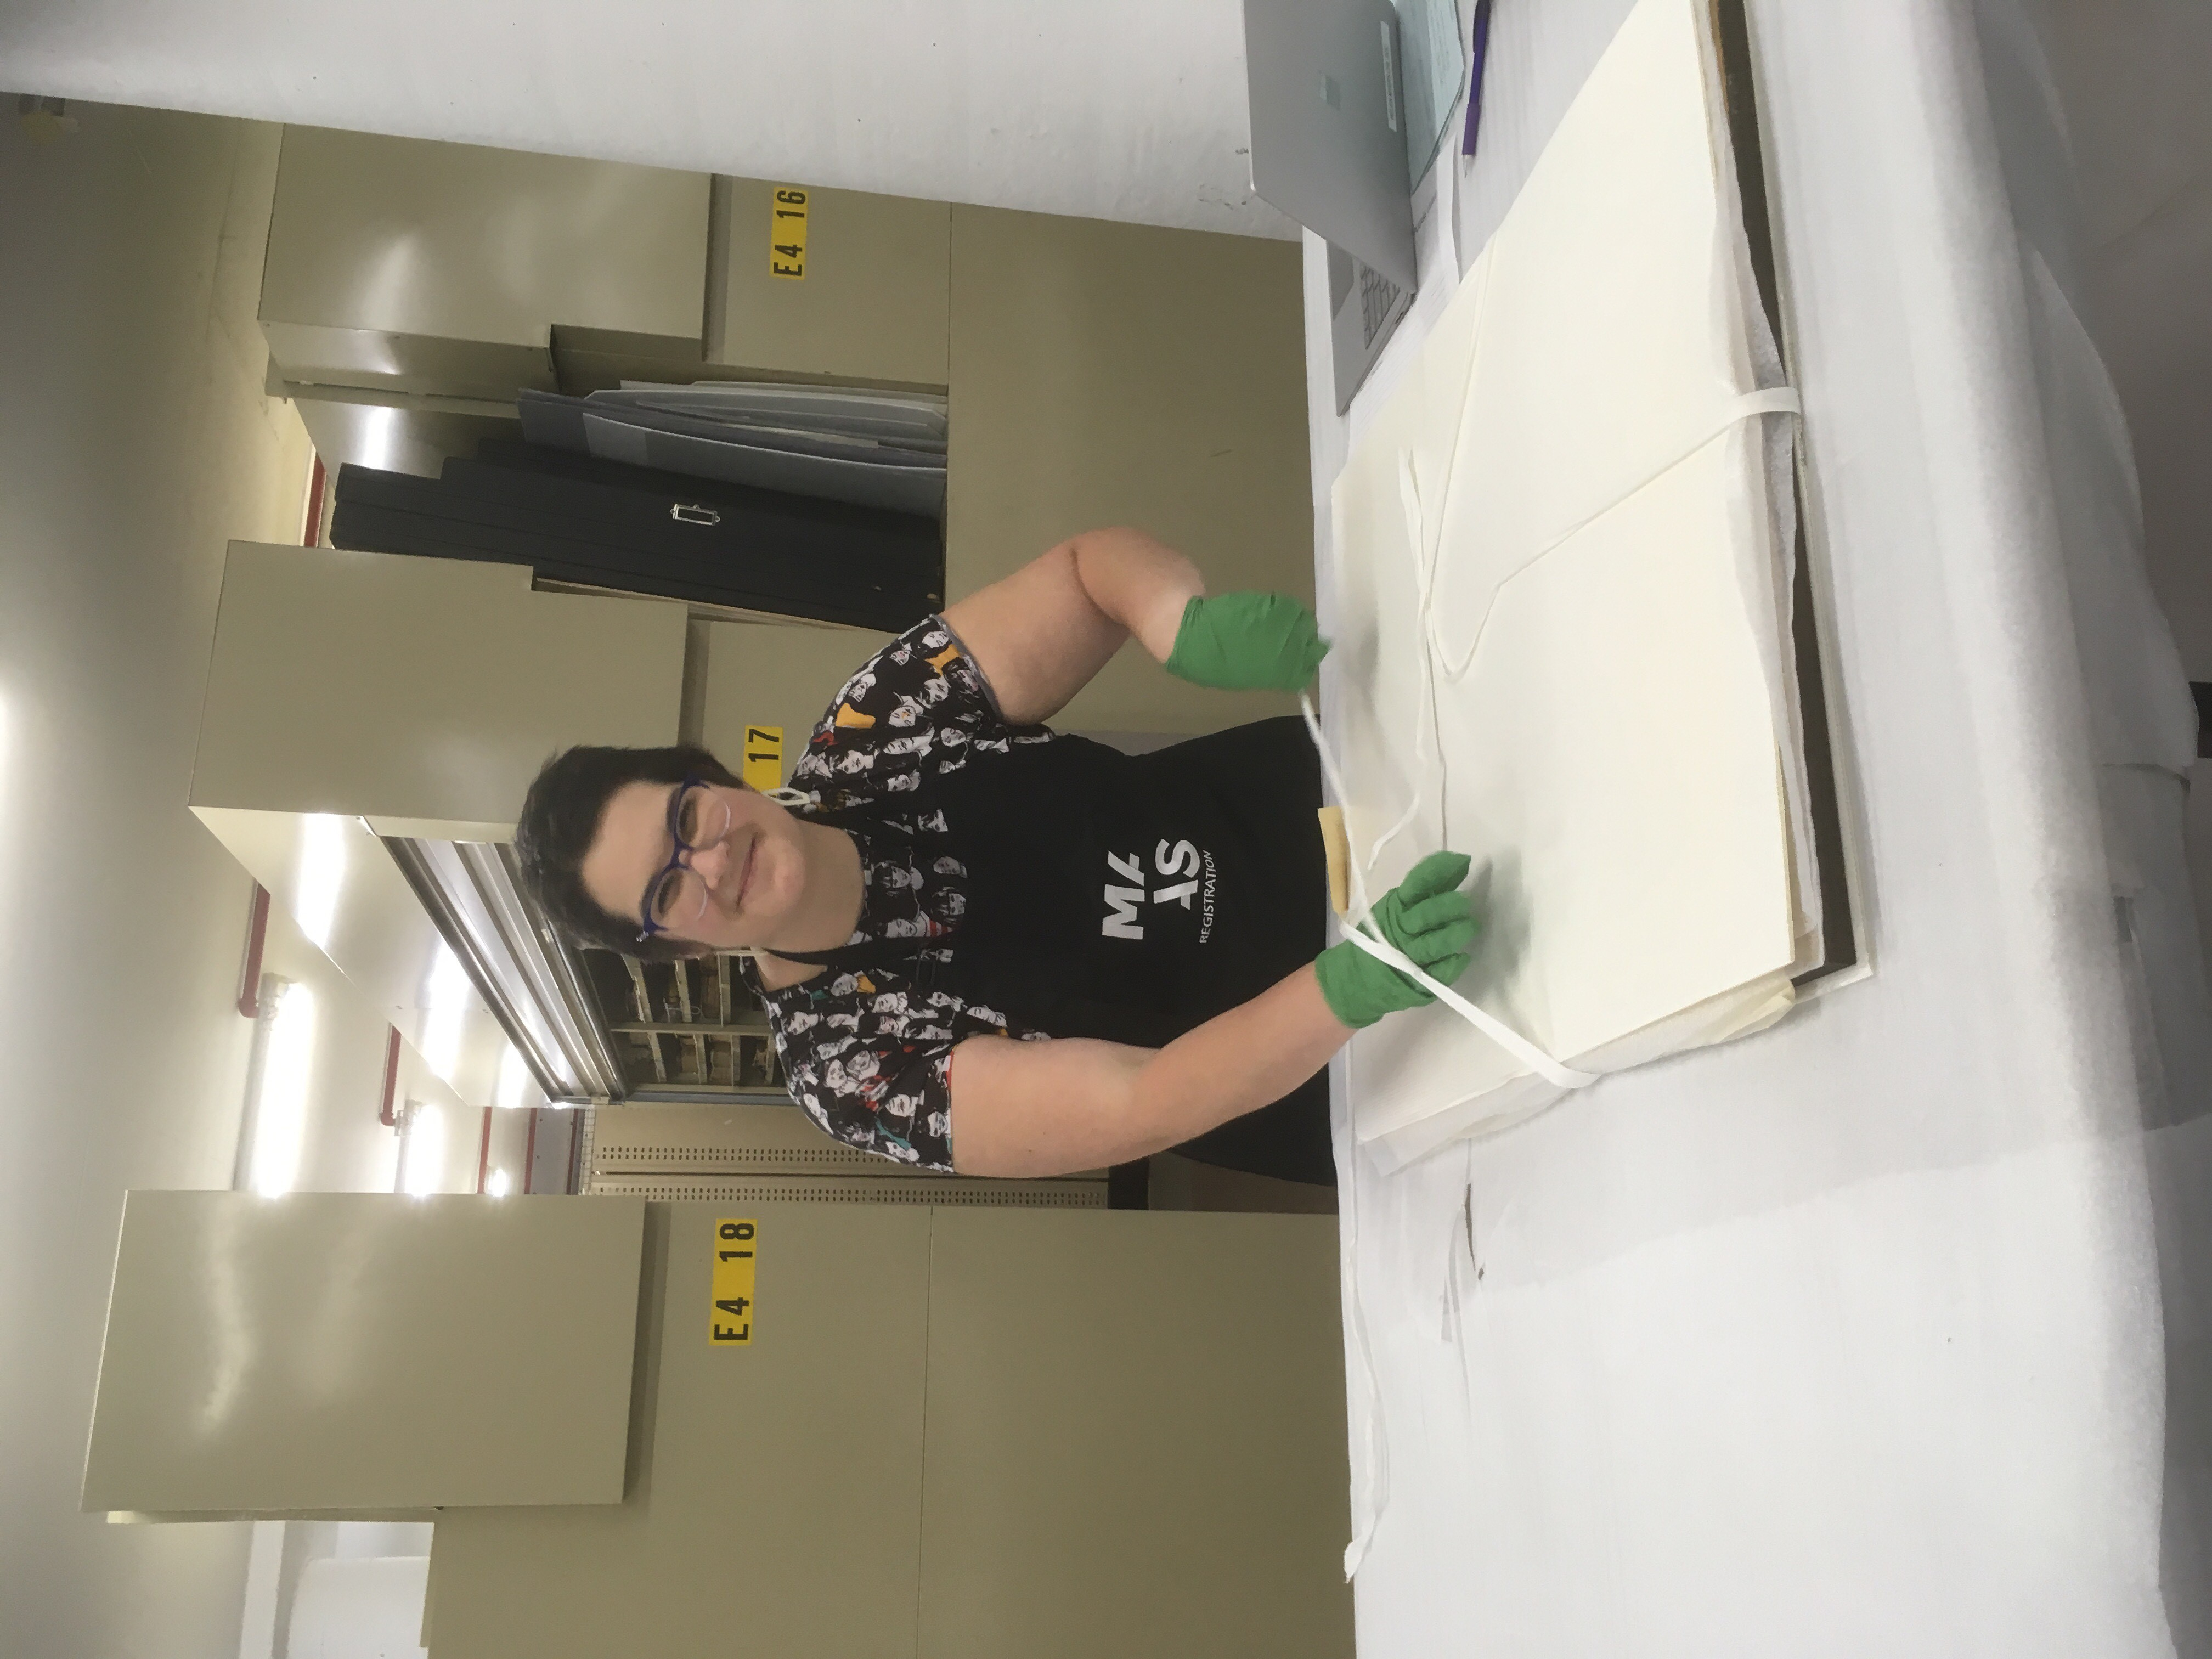 A woman in green latex gloves and a black apron with a 'MAAS' logo untying the fabric ribbon on a stack of paper works. A laptop is beside her and a row of compactus bays in the background.